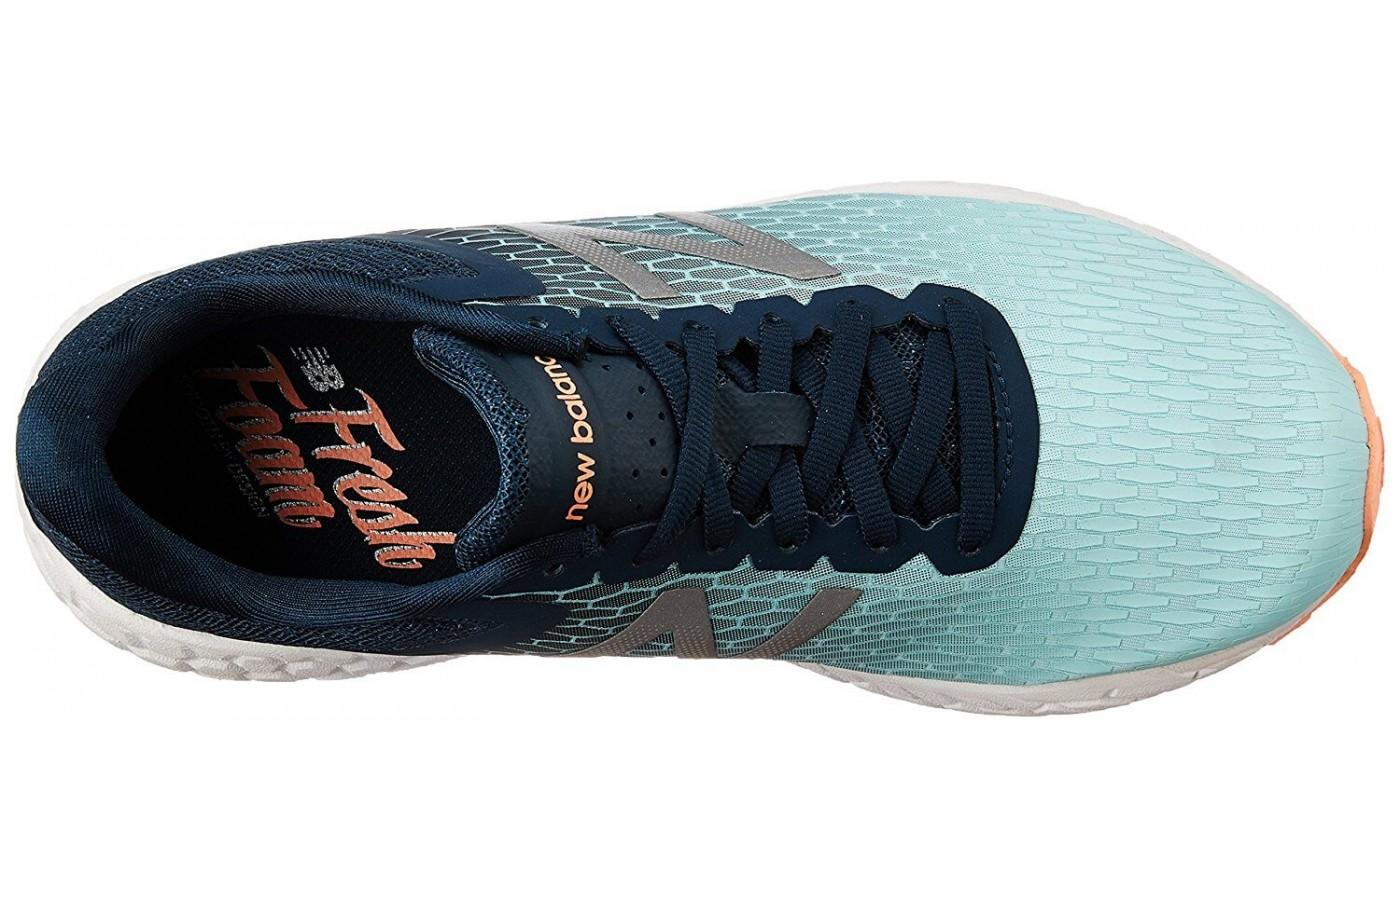 New Balance Fresh Foam Boracay V3 has stretchy laces